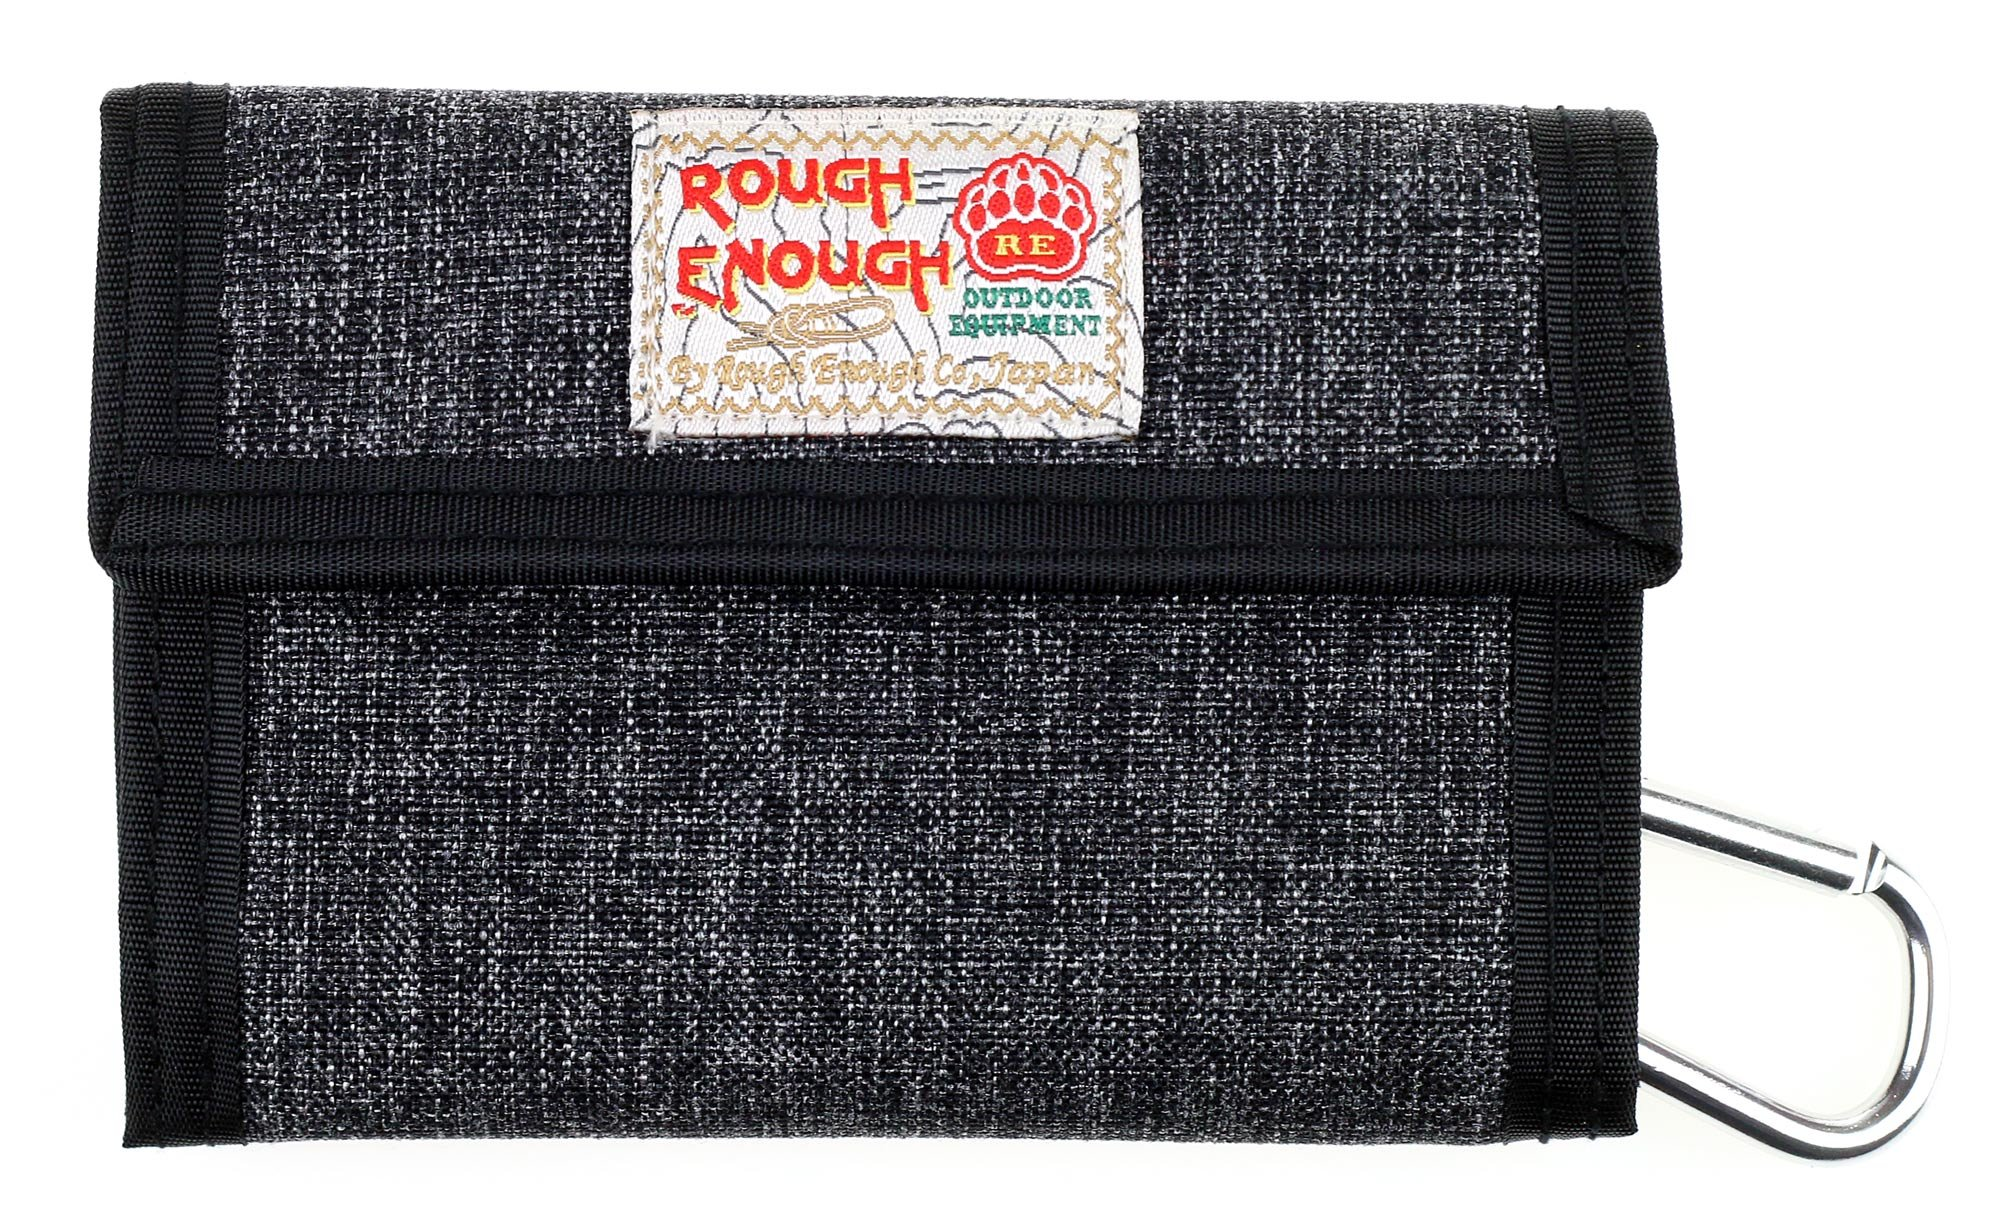 Rough Enough Premium Cotton Stone Washed Classic Basics Stylish Fancy Small Portable Trifold Coin Wallet Purse Holder Organizer Case with Zippers for Kids Boy Men Women Sports Outdoors Travel